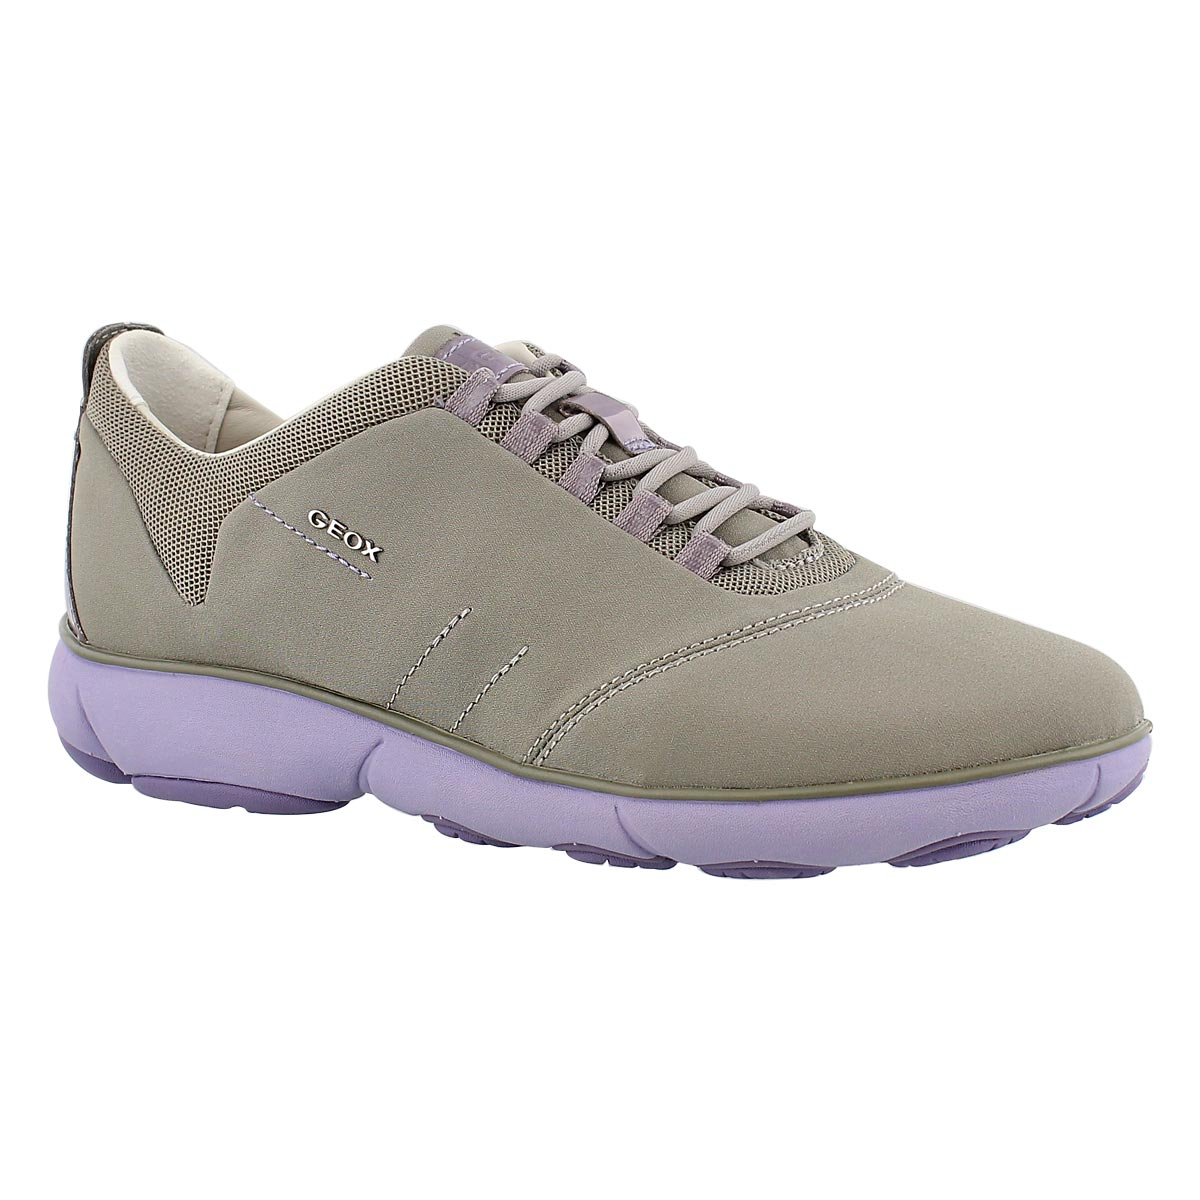 Women's NEBULA light grey/lilac running shoes